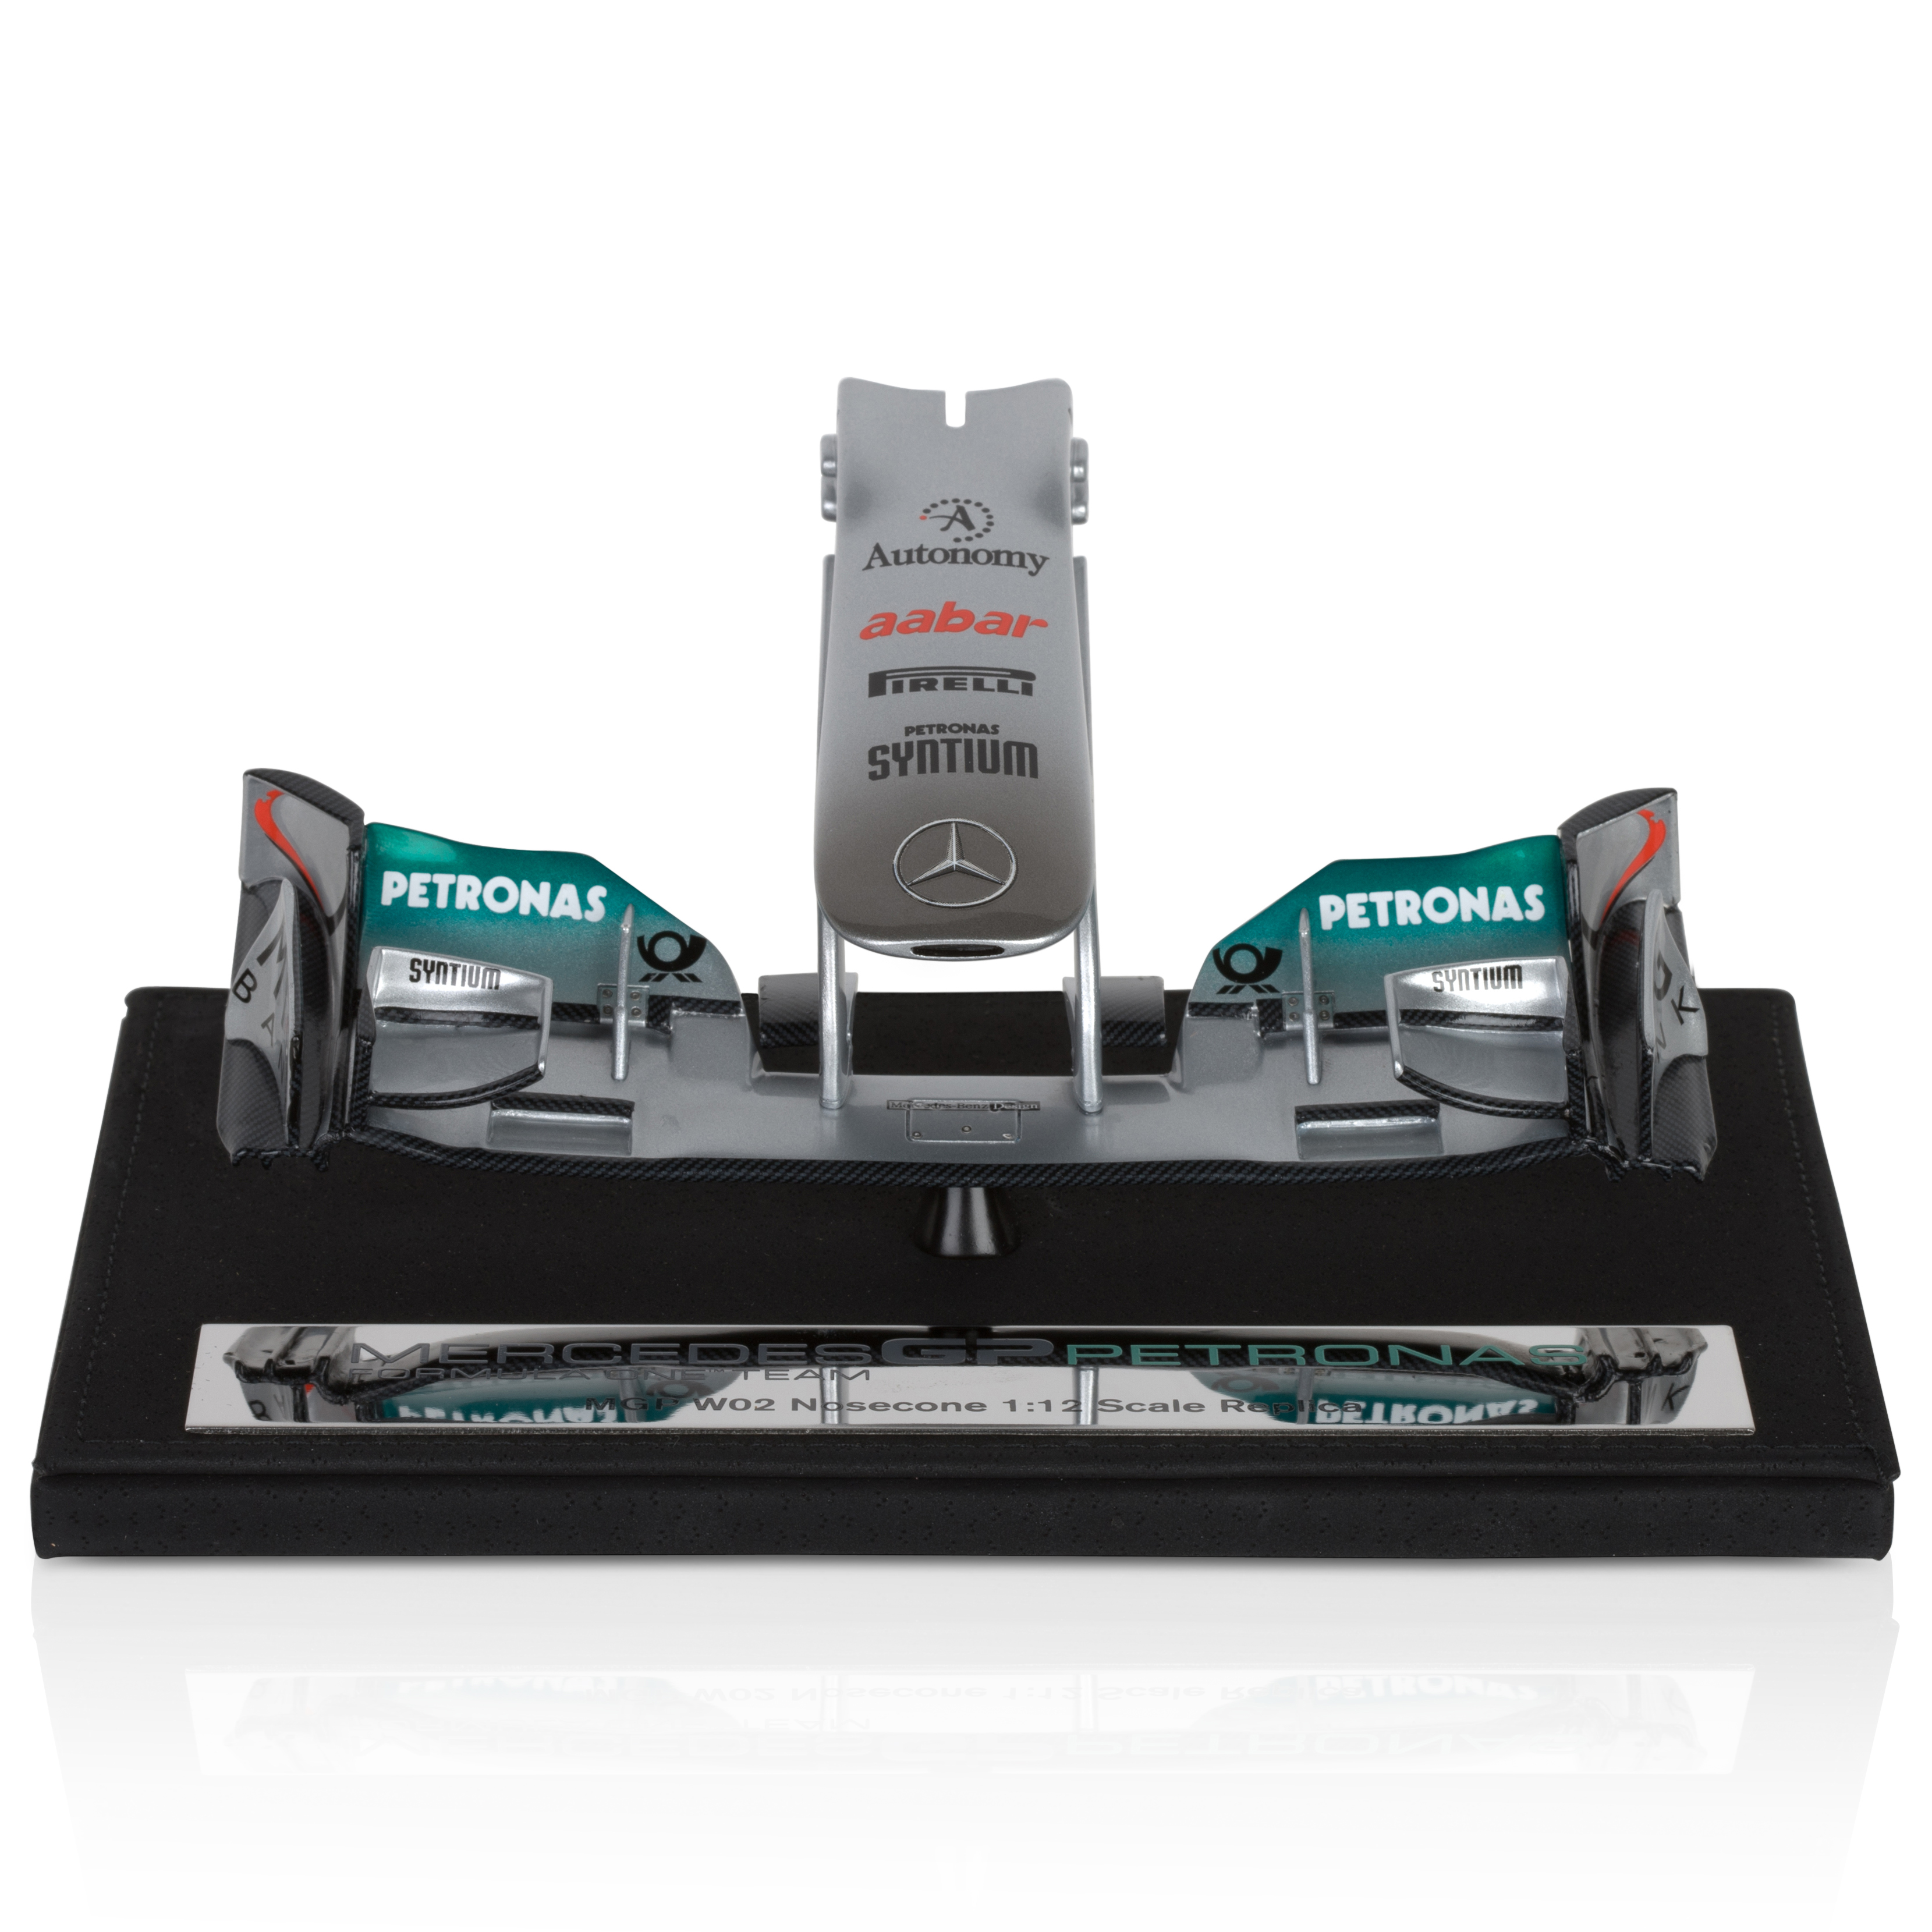 Mercedes GP Petronas Formula One Team MGP W02 1:12 Scale Nosecone